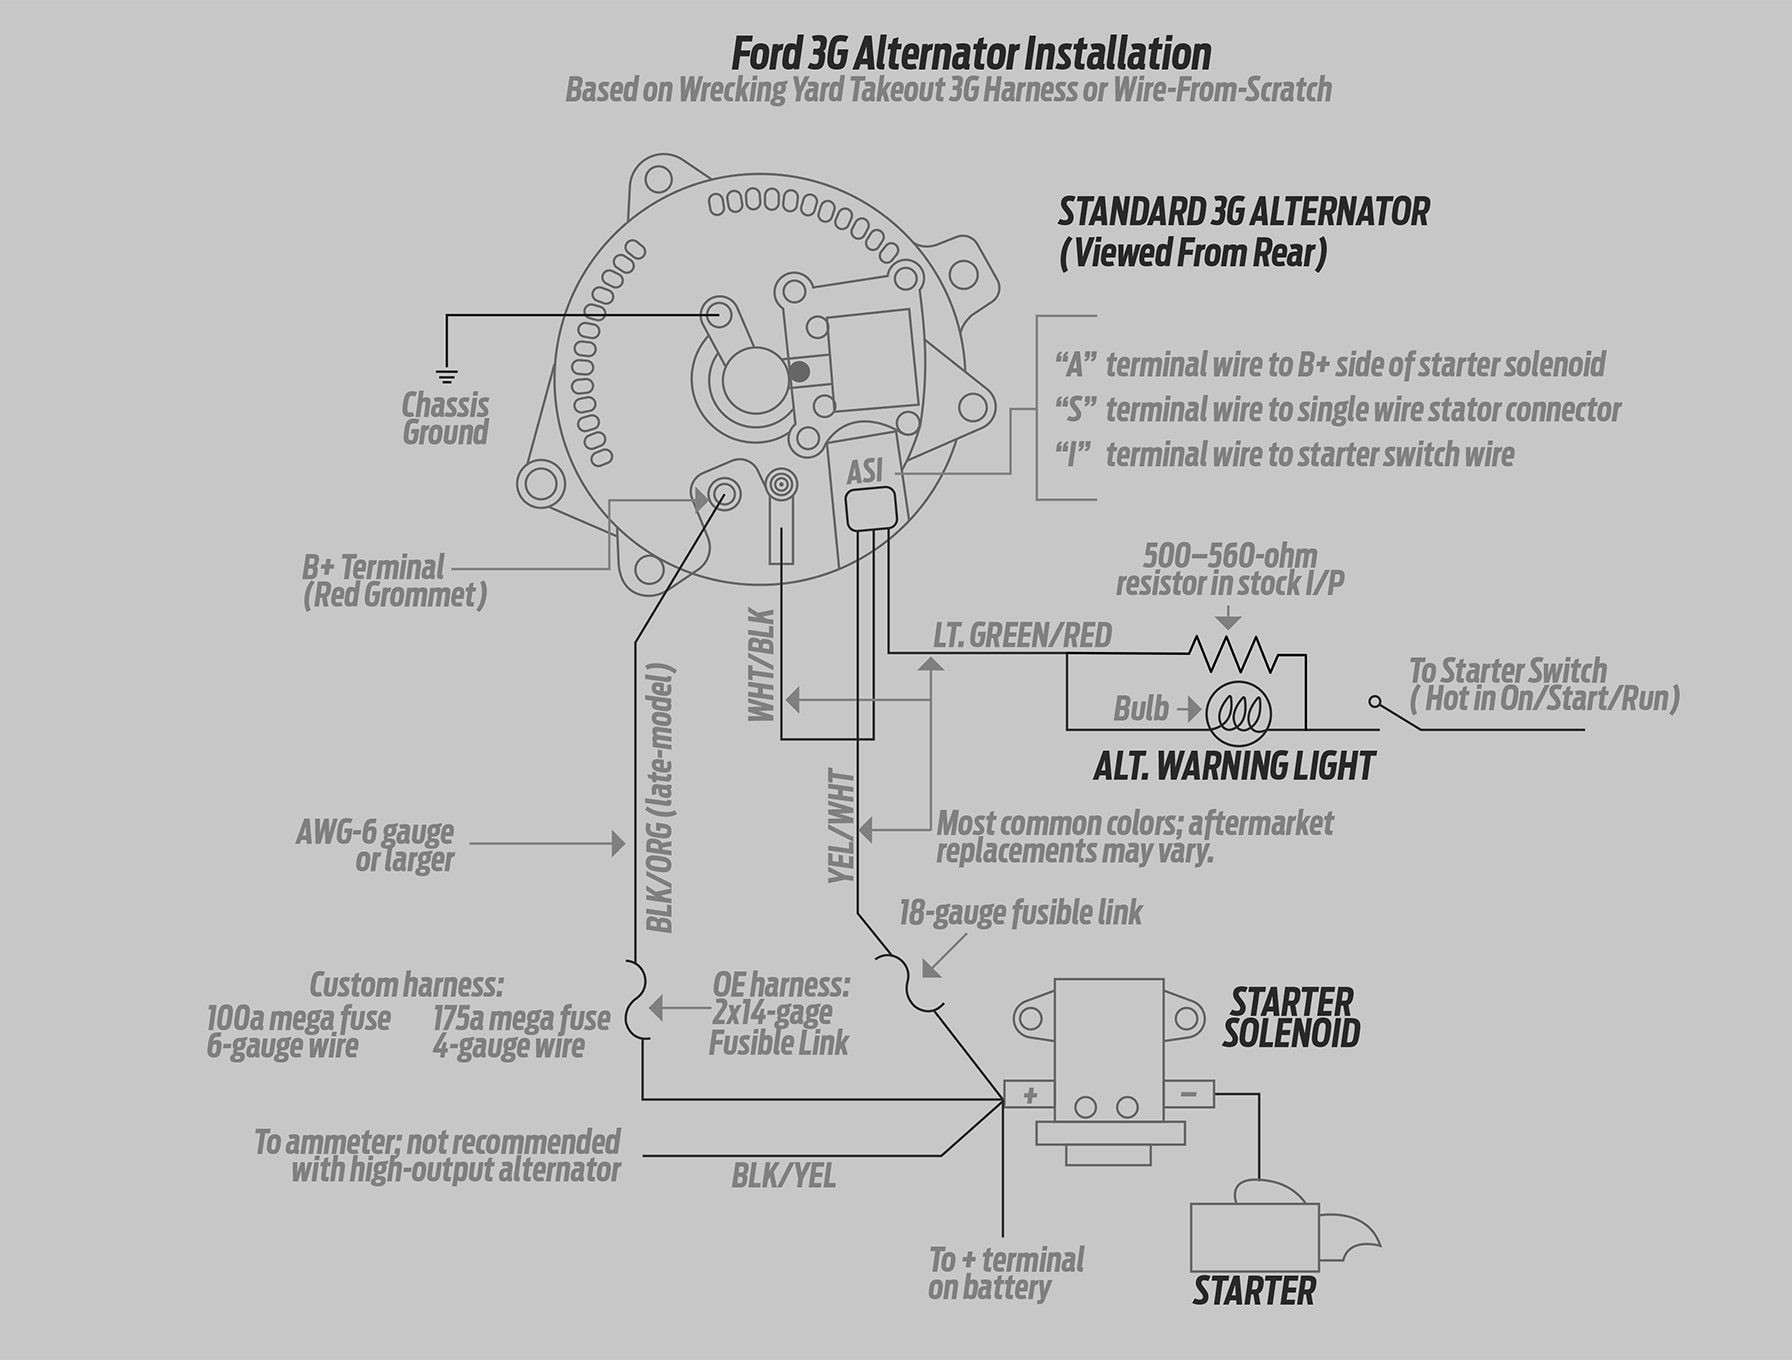 1991 ford F150 Single Terminal Starter Wireing Diagram] 2006 ford Style Wiring Diagram Full Version Hd Of 1991 ford F150 Single Terminal Starter Wireing